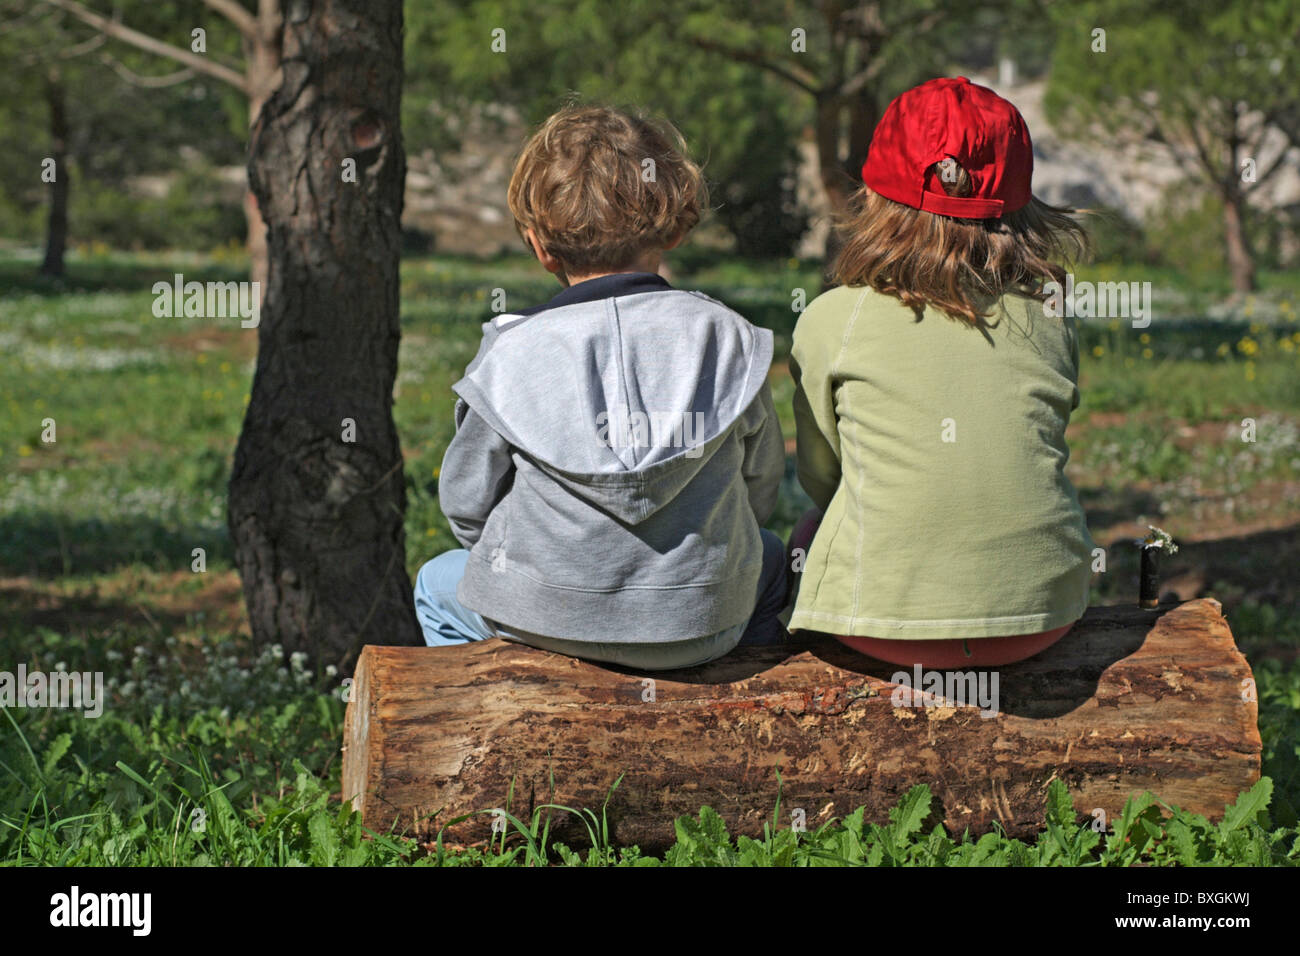 Two little friends sitting on a tree trunk in the forest. - Stock Image